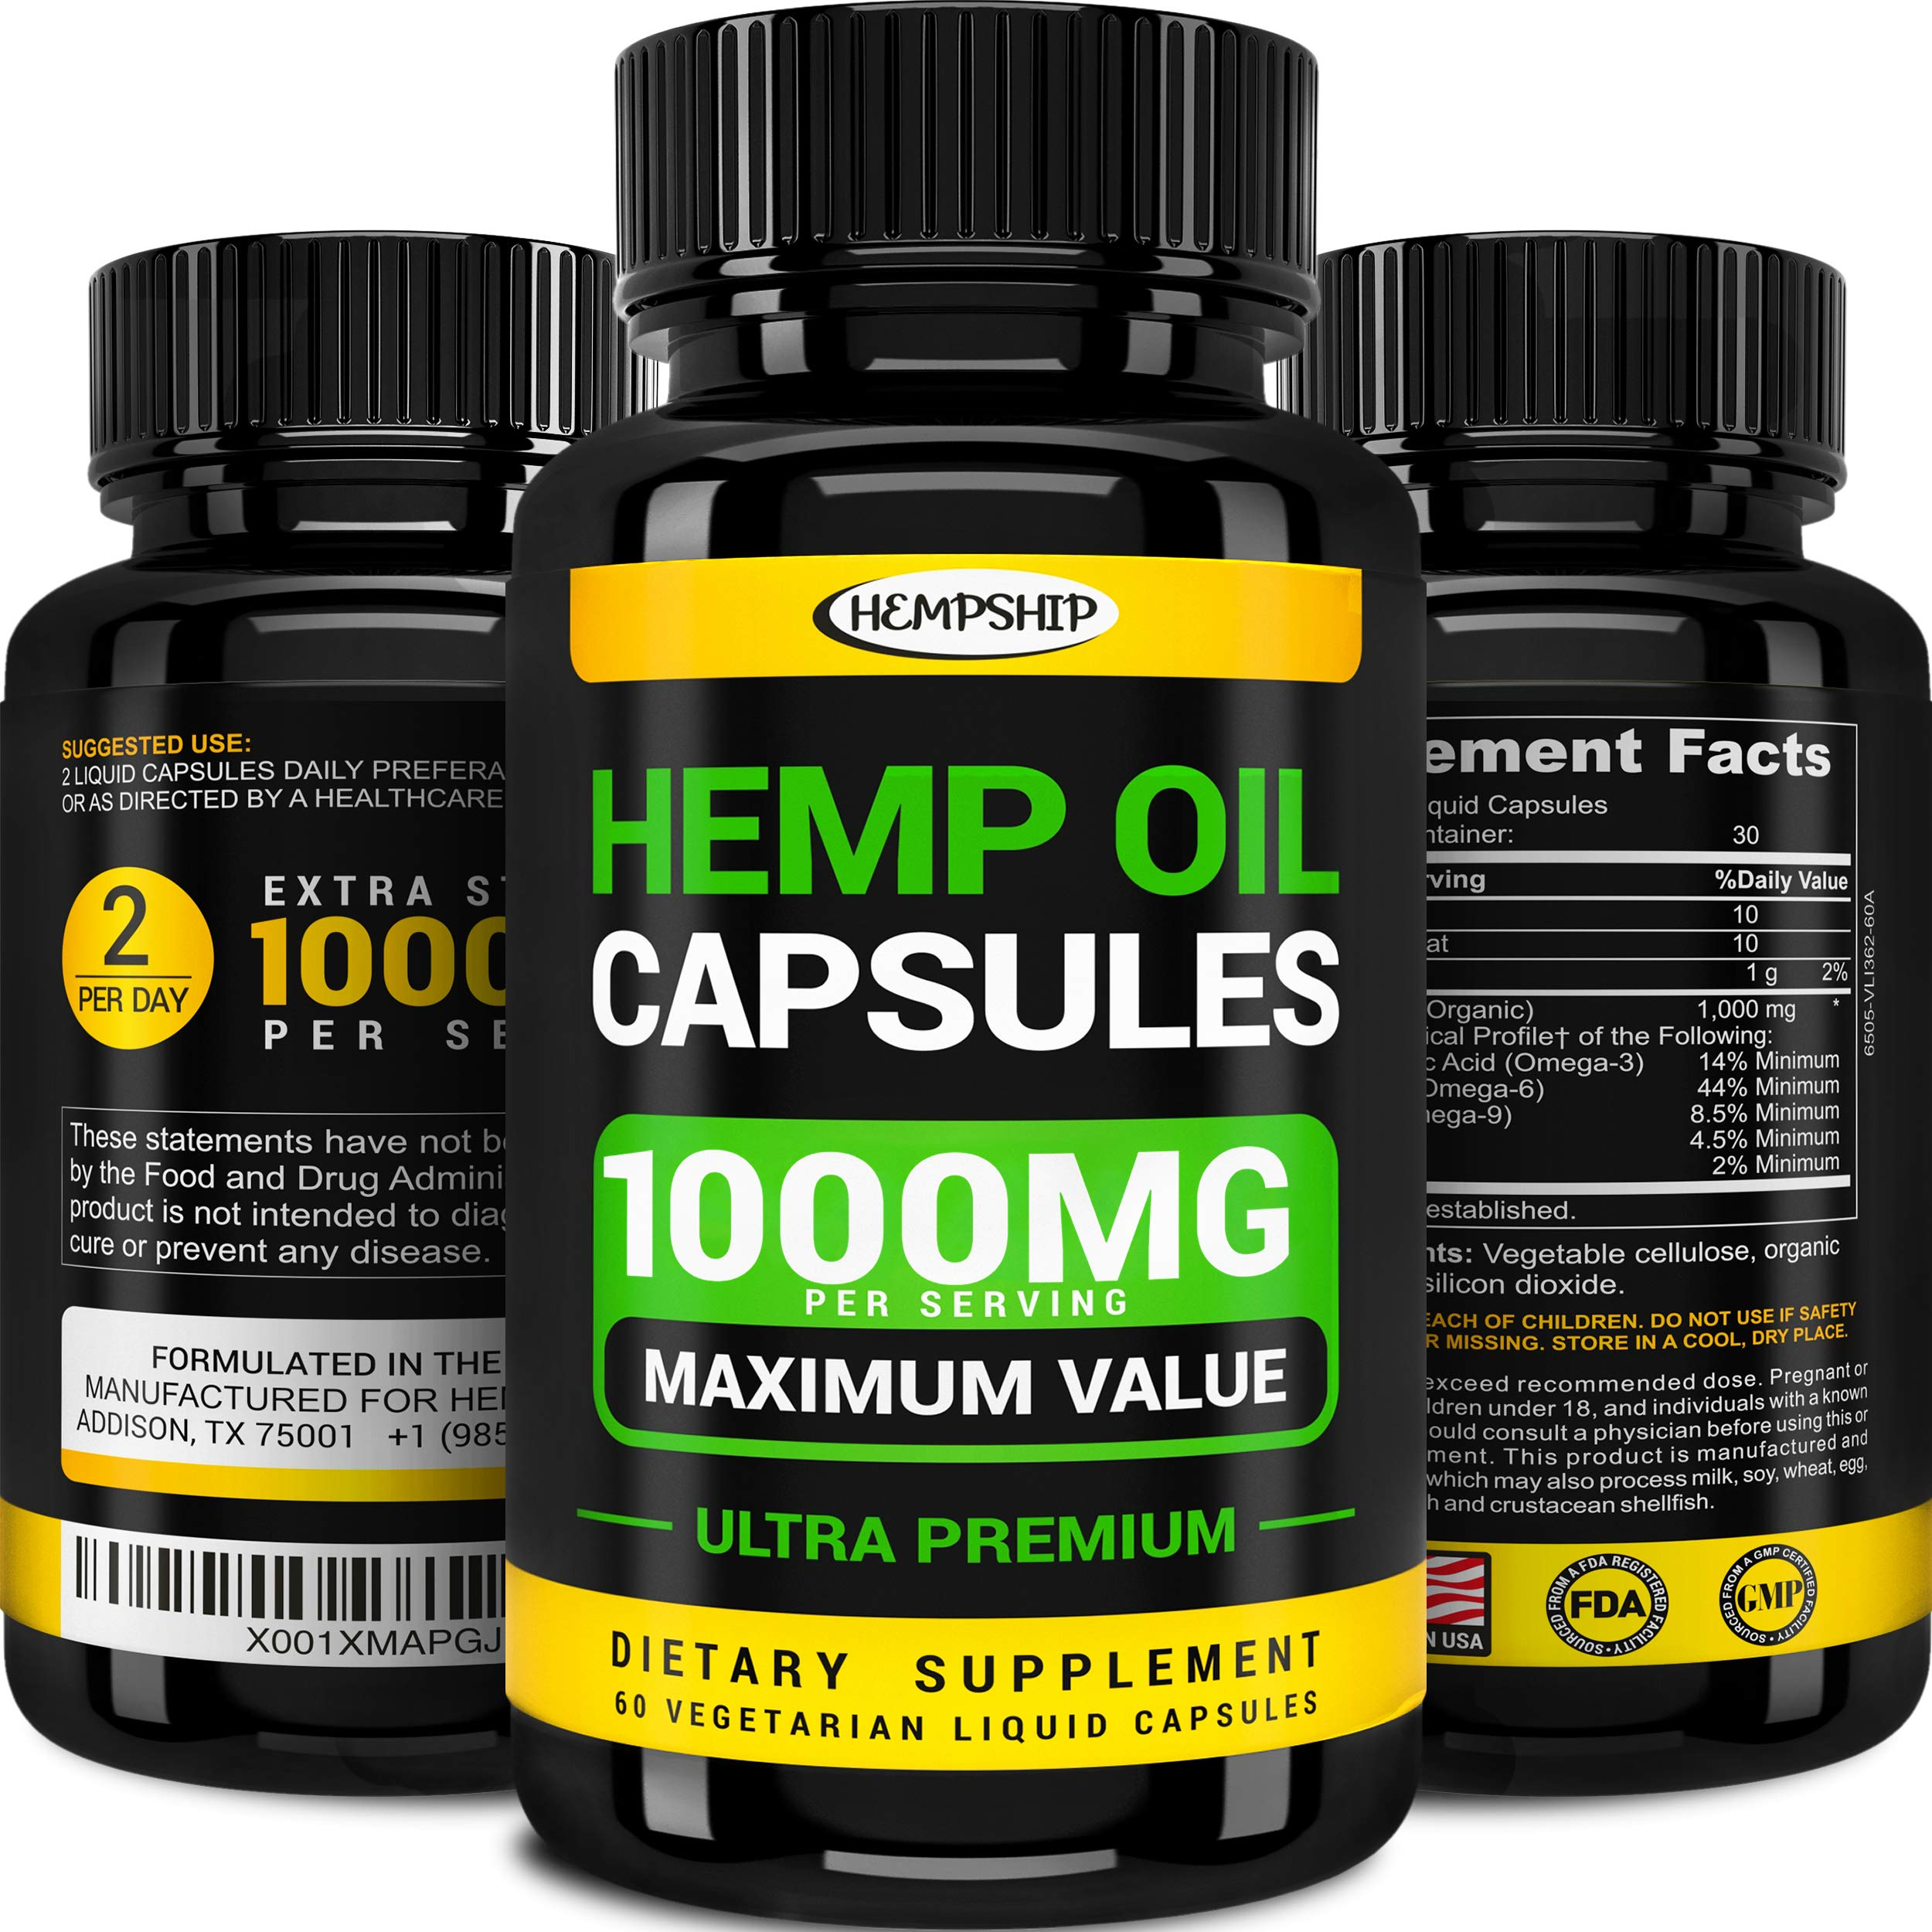 Hemp Oil Capsules – 1000 MG of Pure Hemp Extract per Serving - Pain, Stress & Anxiety Relief - Natural Sleep & Mood Support – Made in The USA - Extra Strength, Maximum Value - Rich in Omega 3, 6, 9